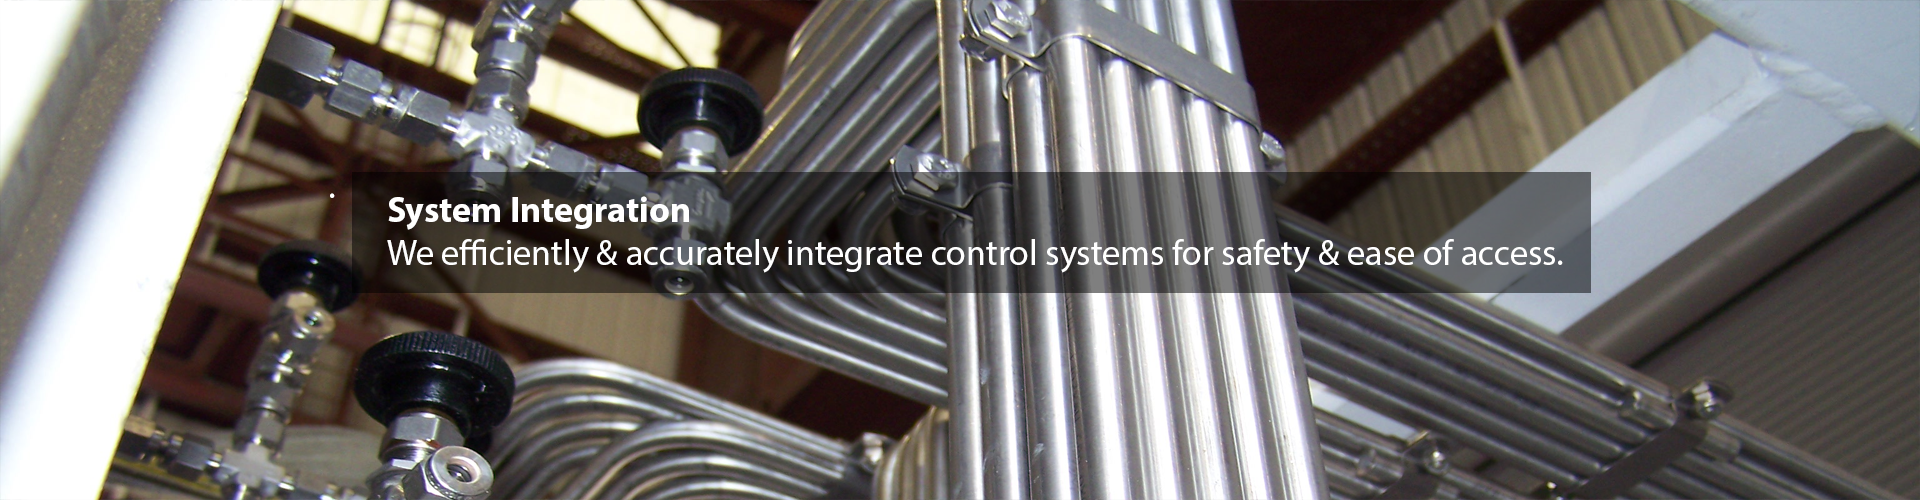 rig-tech control system integration